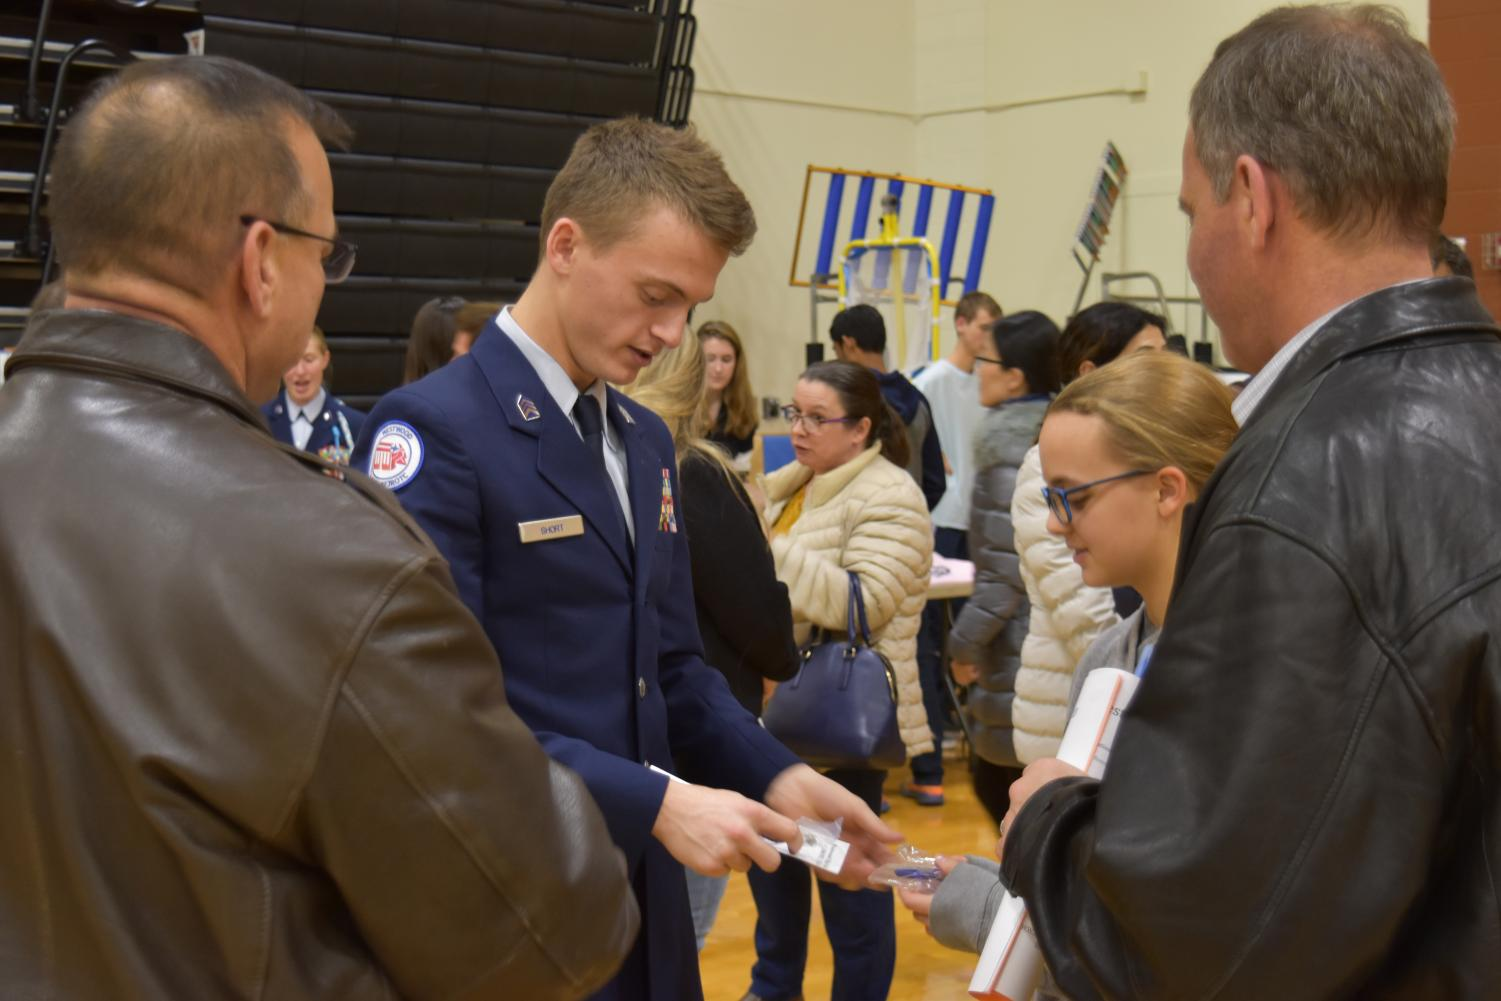 Representing+AFJROTC%2C+Chase+Short+%2720+hands+out+souvenirs.+In+9th+grade%2C+AFJROTC+students+take+Aerospace+Science+I.